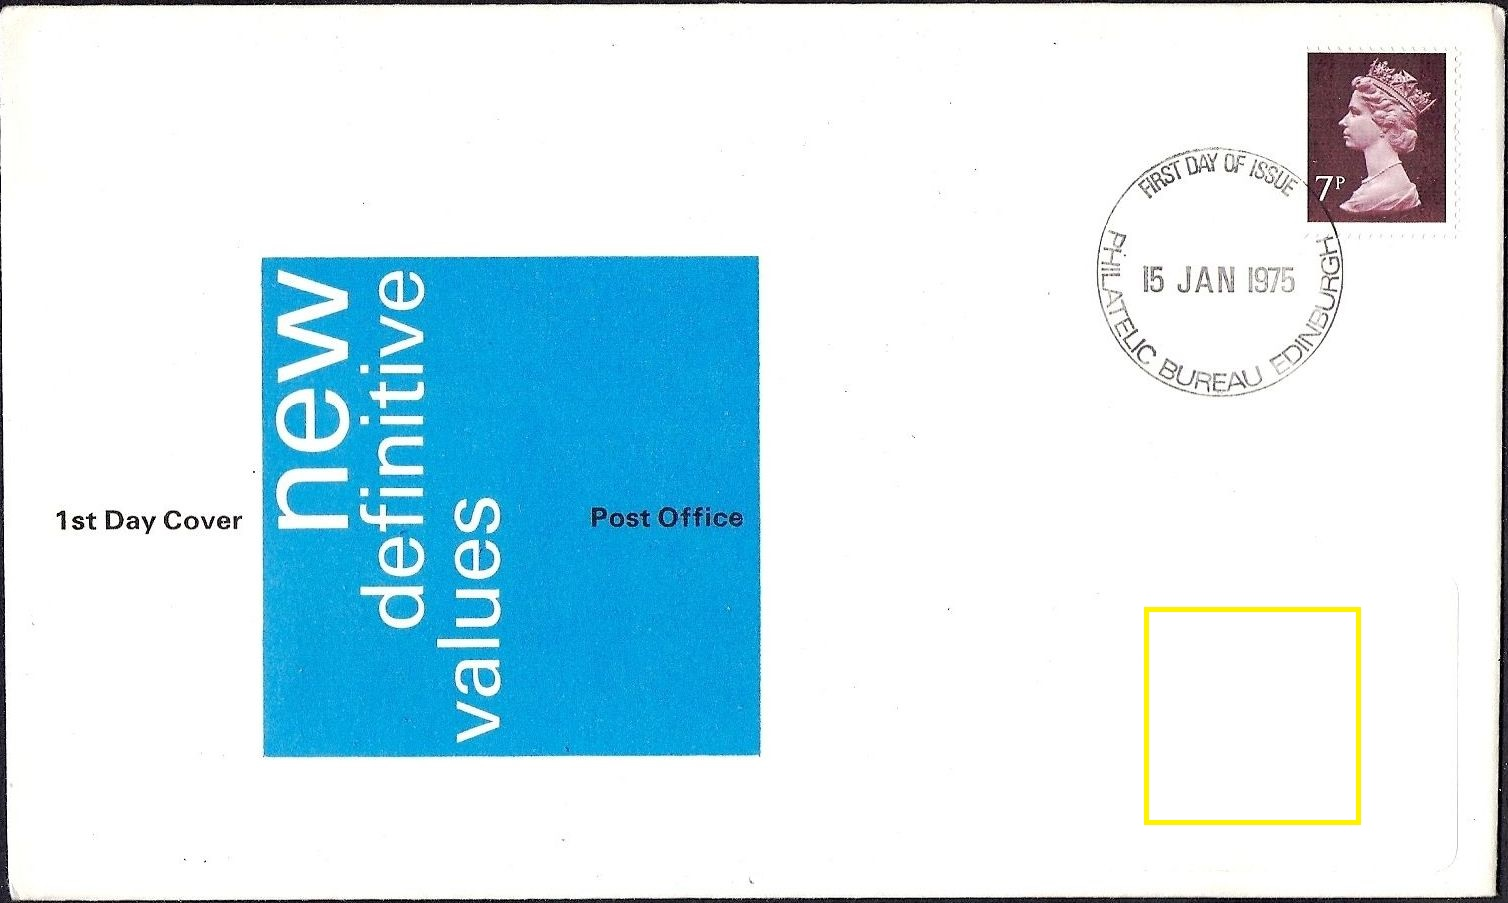 1975 GB - FDC - 7p Changed Definitive (Addressed)